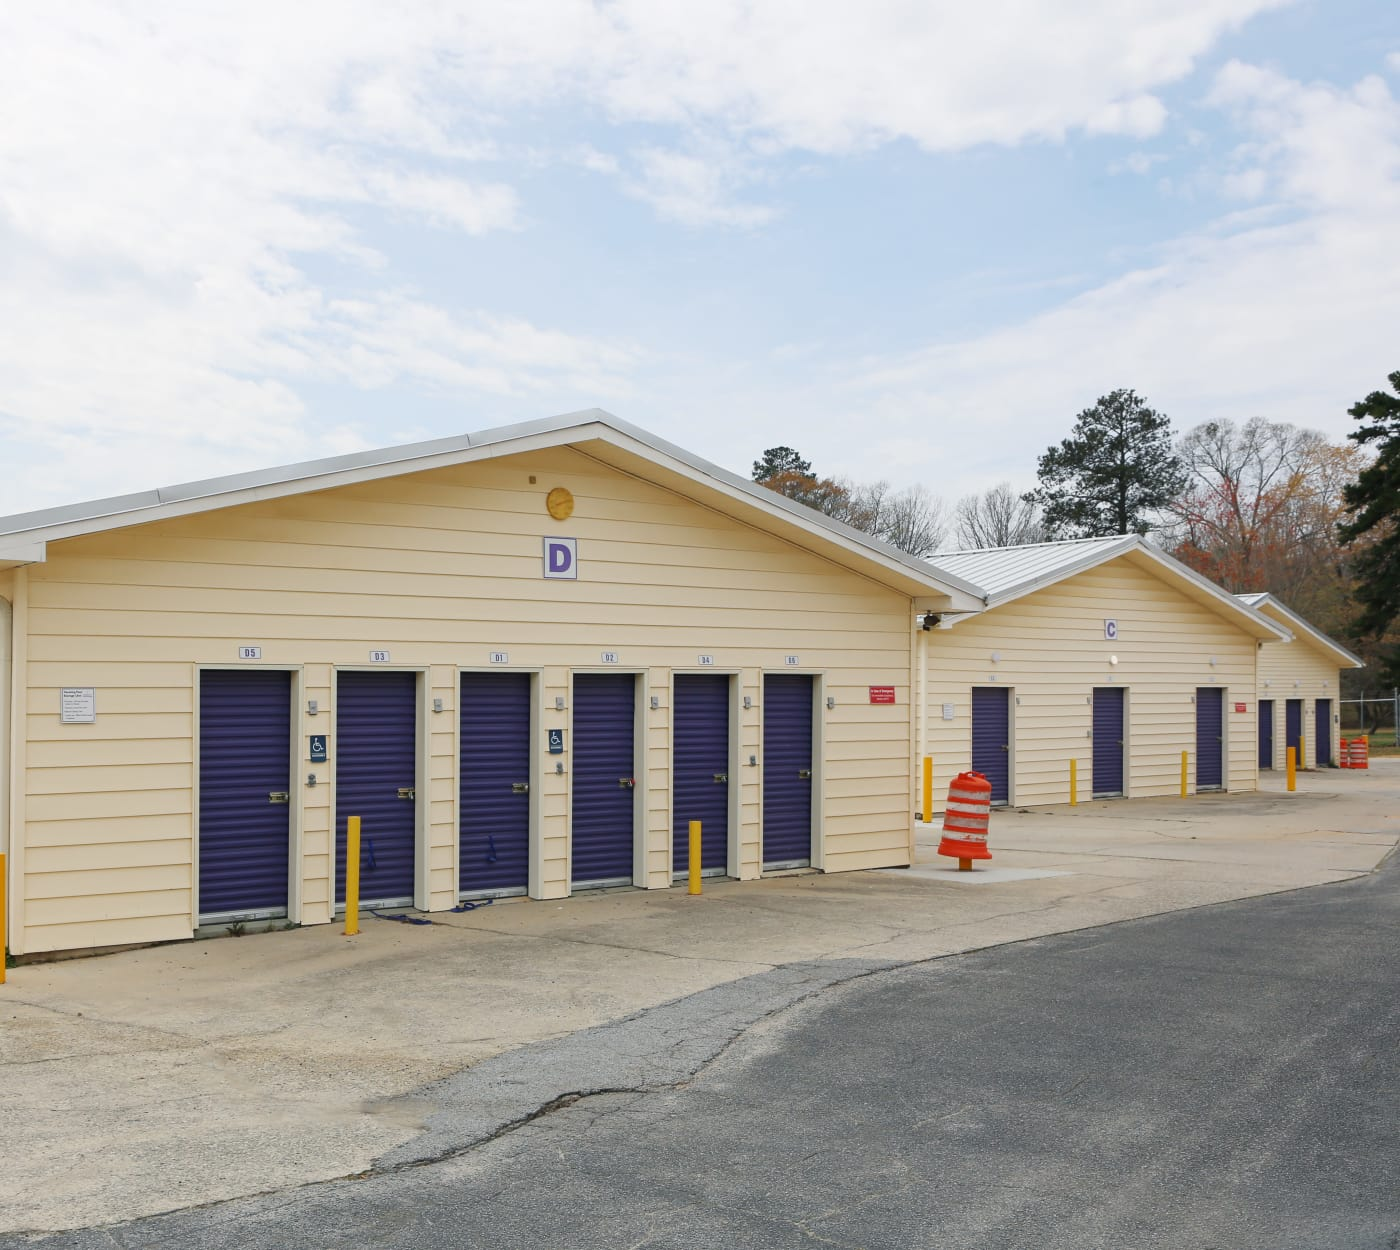 Ground-floor units at StoreSmart Self-Storage in Fayetteville, Georgia